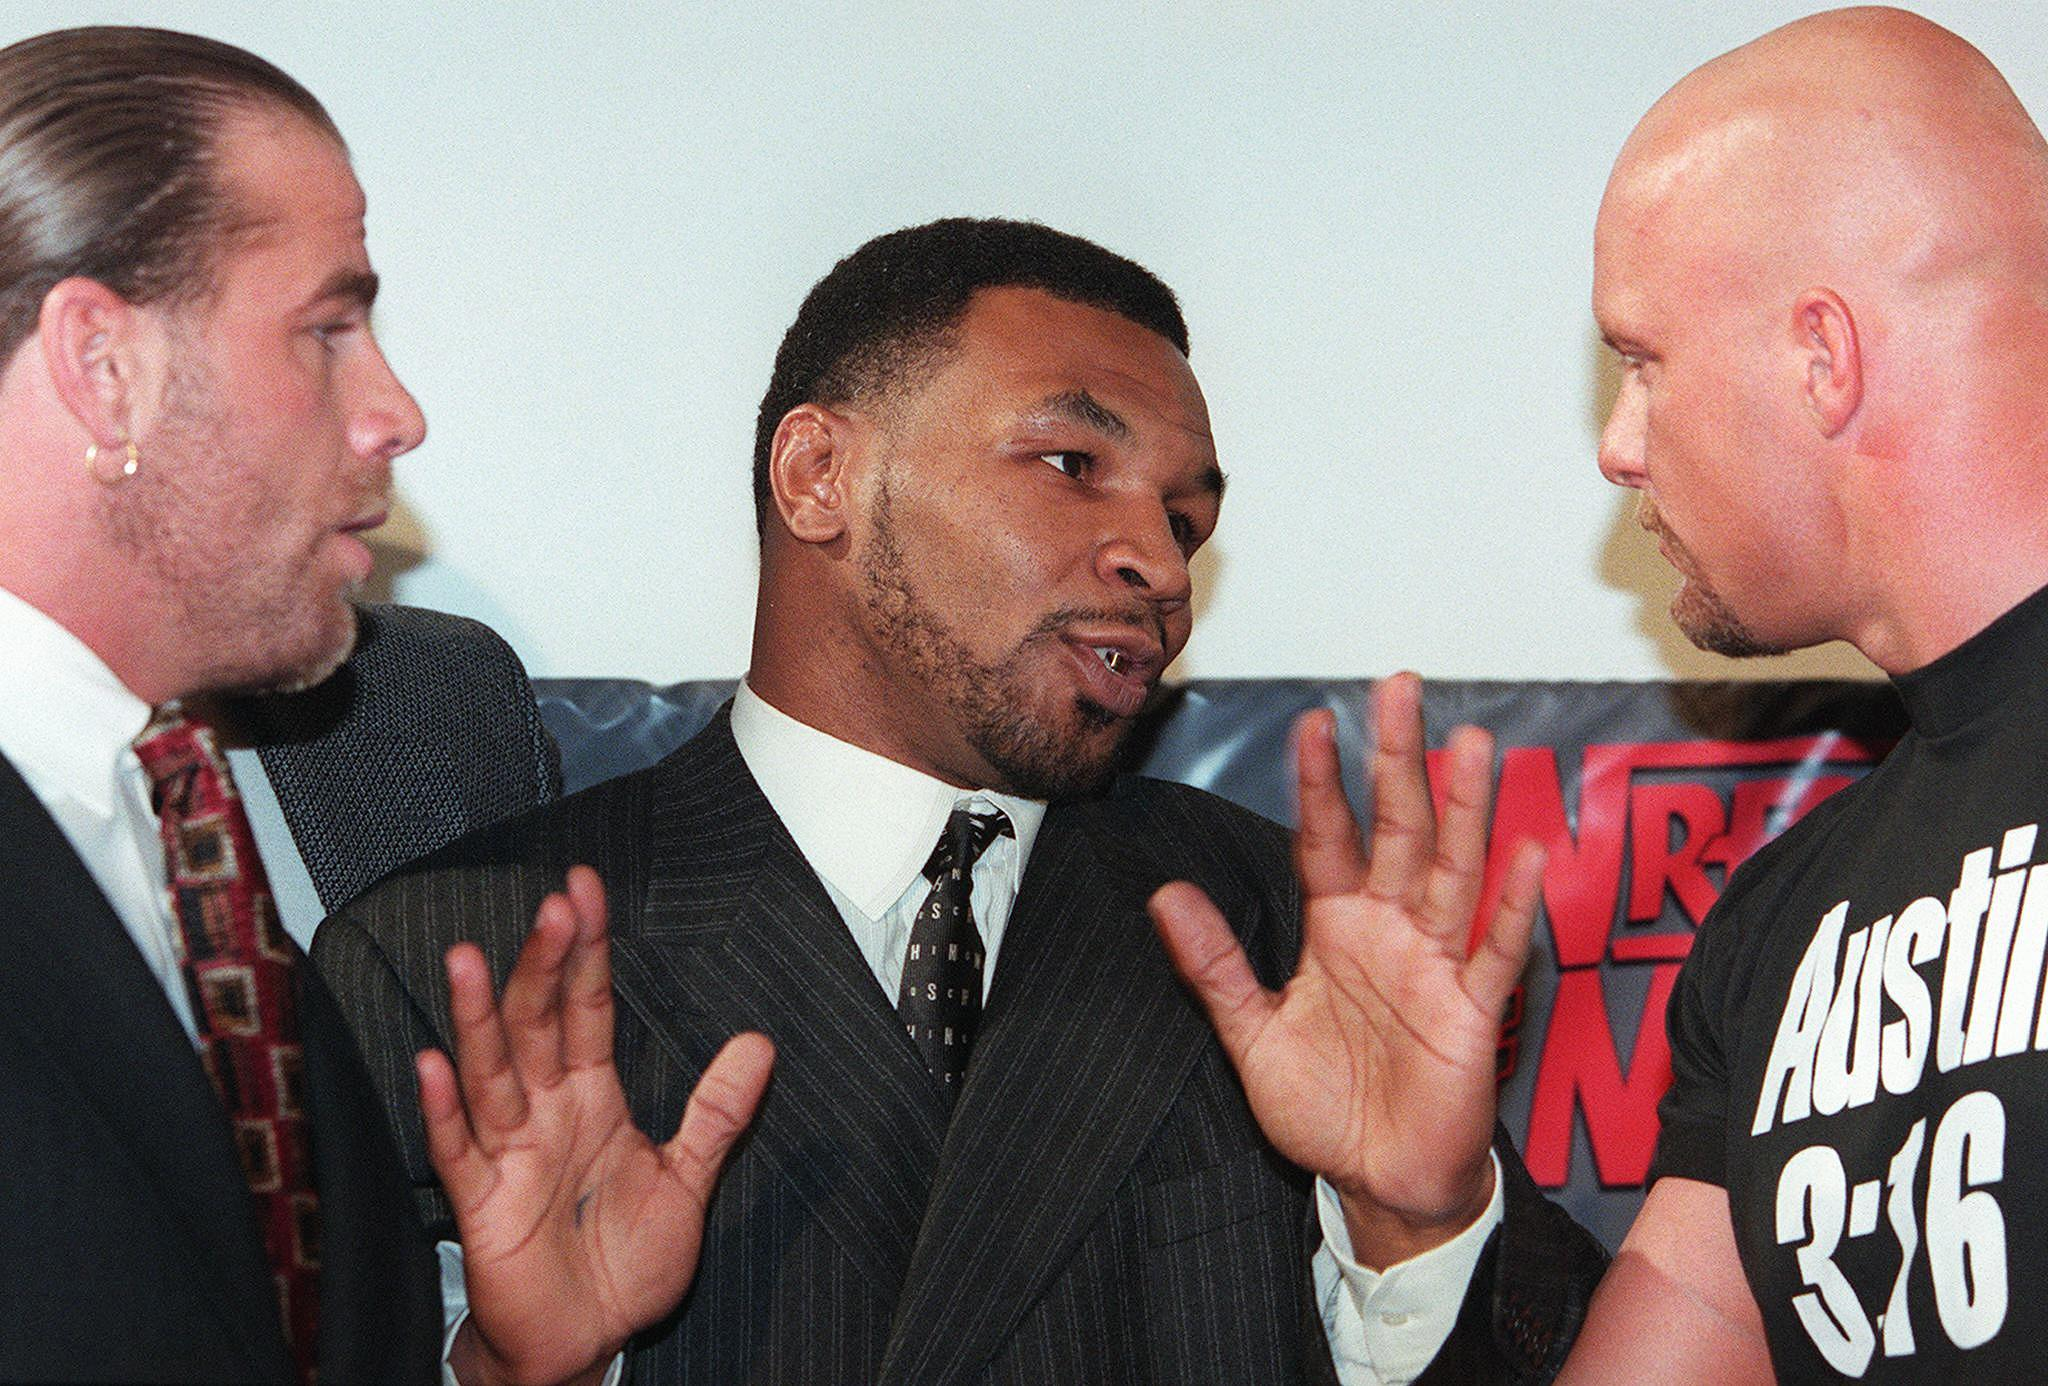 Mike Tyson talking to wrestlers Shawn Michaels and Steve Austin